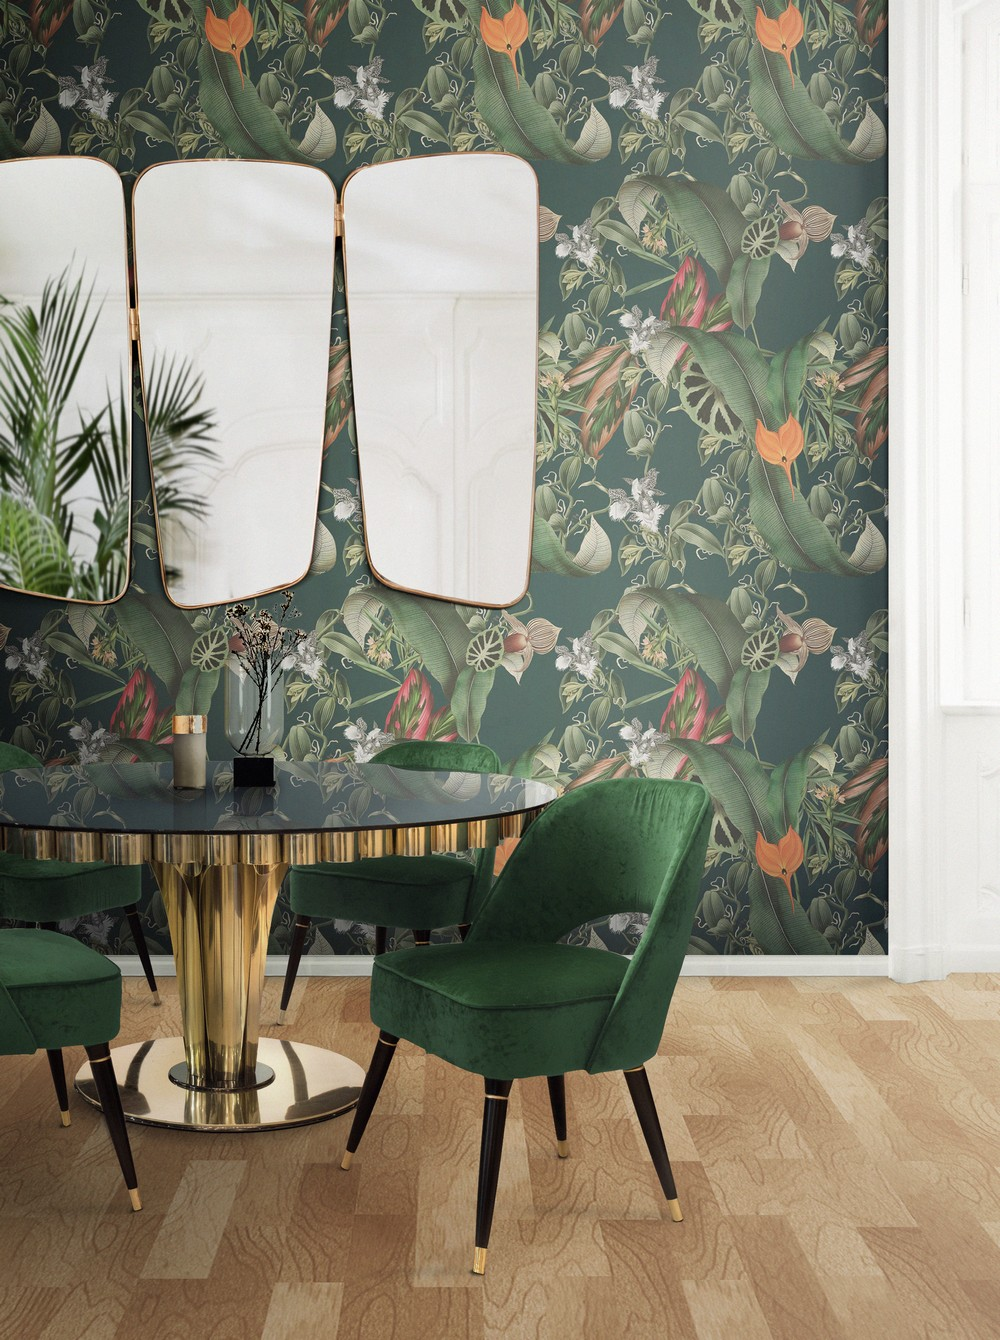 Interior Design Trends To Refine Your Dining Room in 2020 interior design trends Interior Design Trends To Refine Your Dining Room in 2020 tropical themes